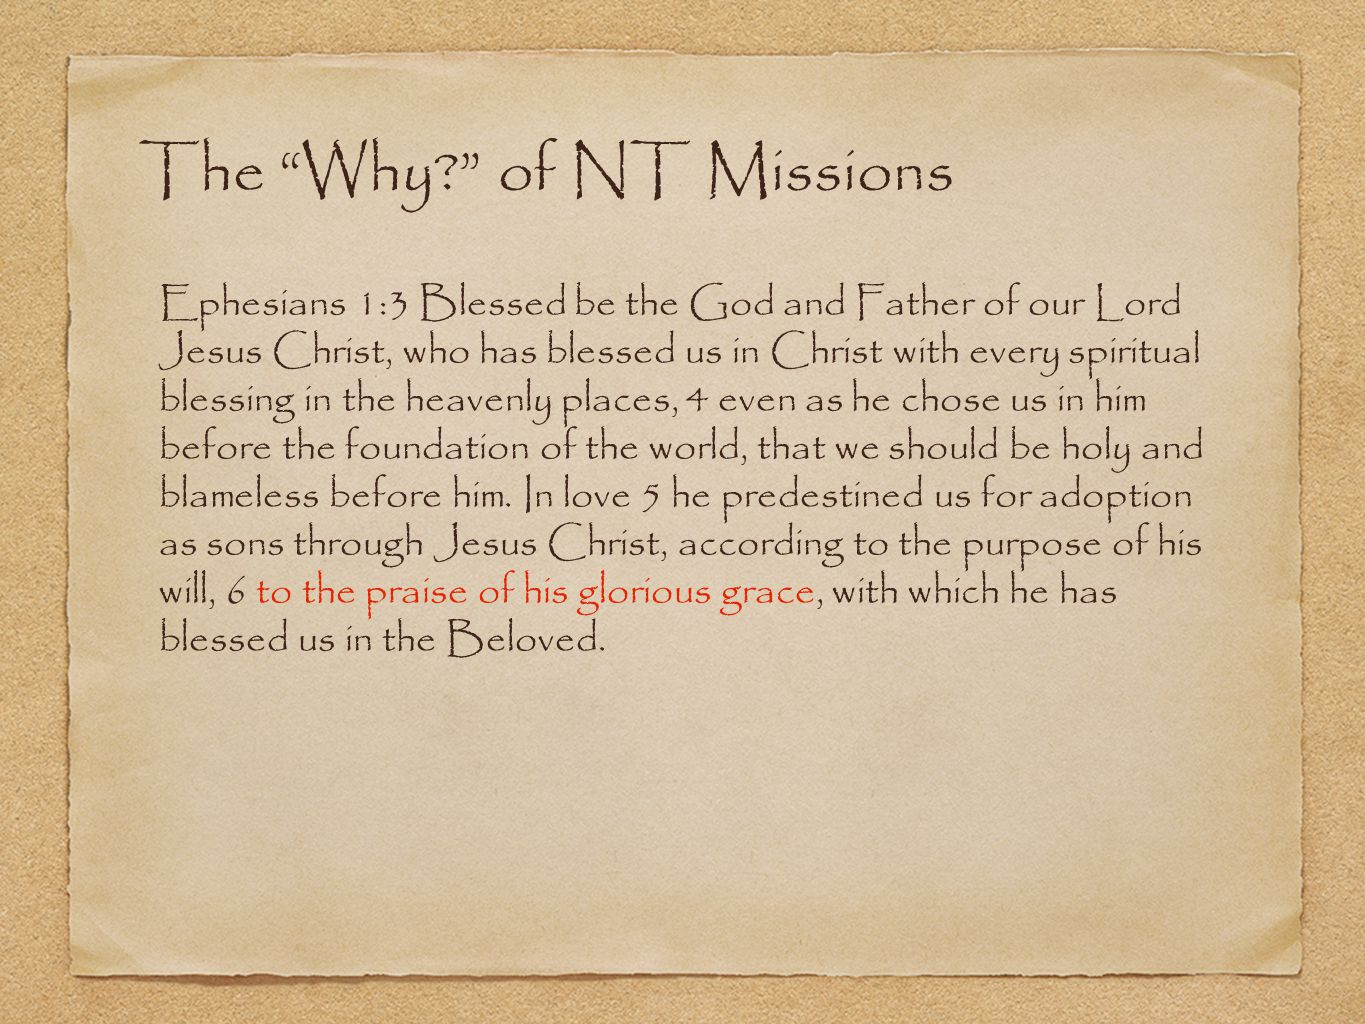 The Why? of NT Missions Ephesians 1:3 Blessed be the God and Father of our Lord Jesus Christ, who has blessed us in Christ with every spiritual blessing in the heavenly places, 4 even as he chose us in him before the foundation of the world, that we should be holy and blameless before him.